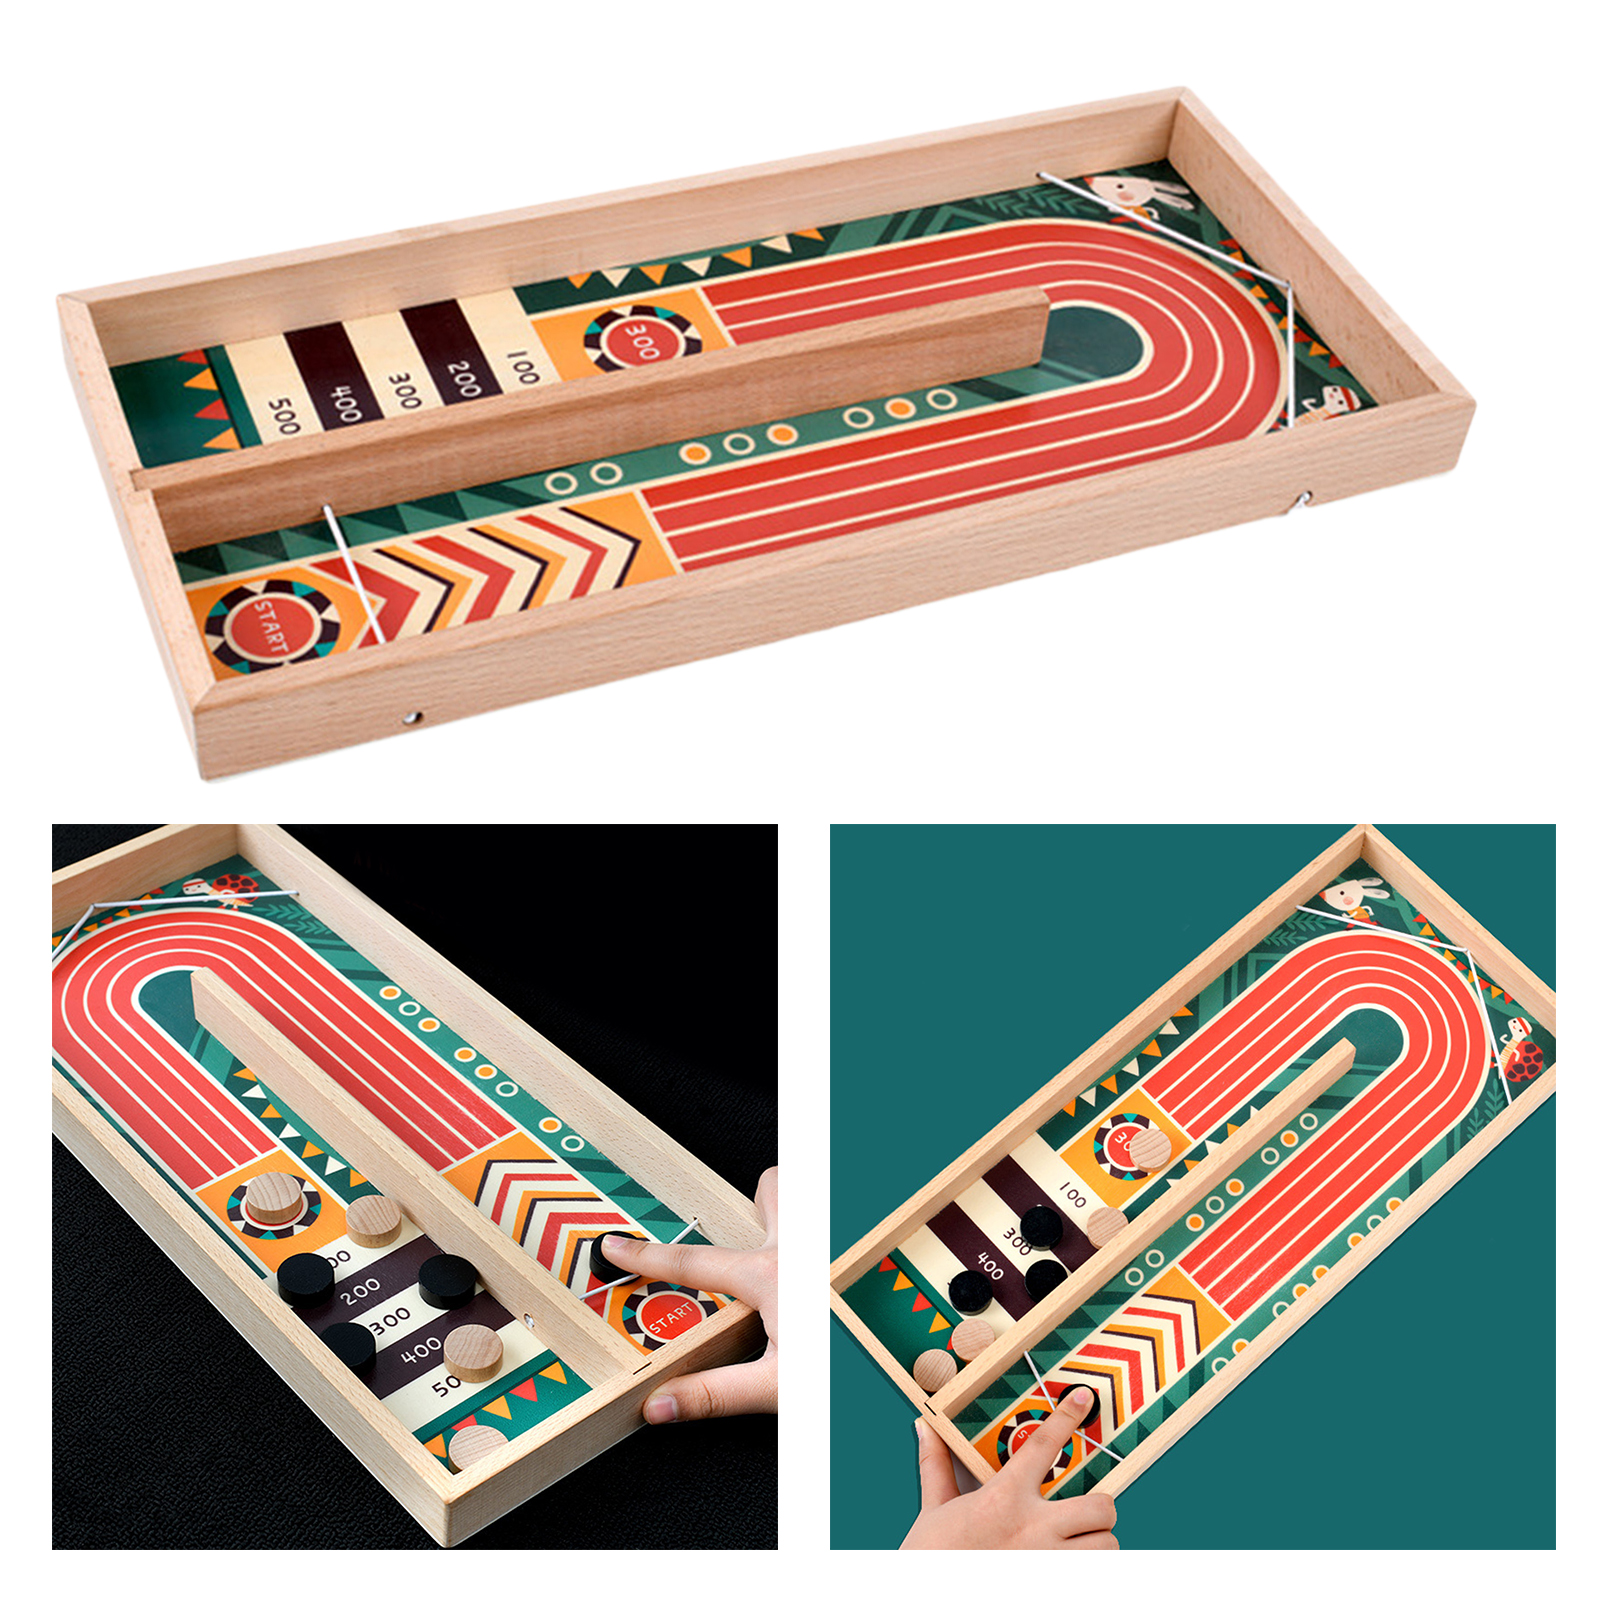 Wood Fast Sling Puck Game Large Size Table Battle Board Game Toy Age 7+